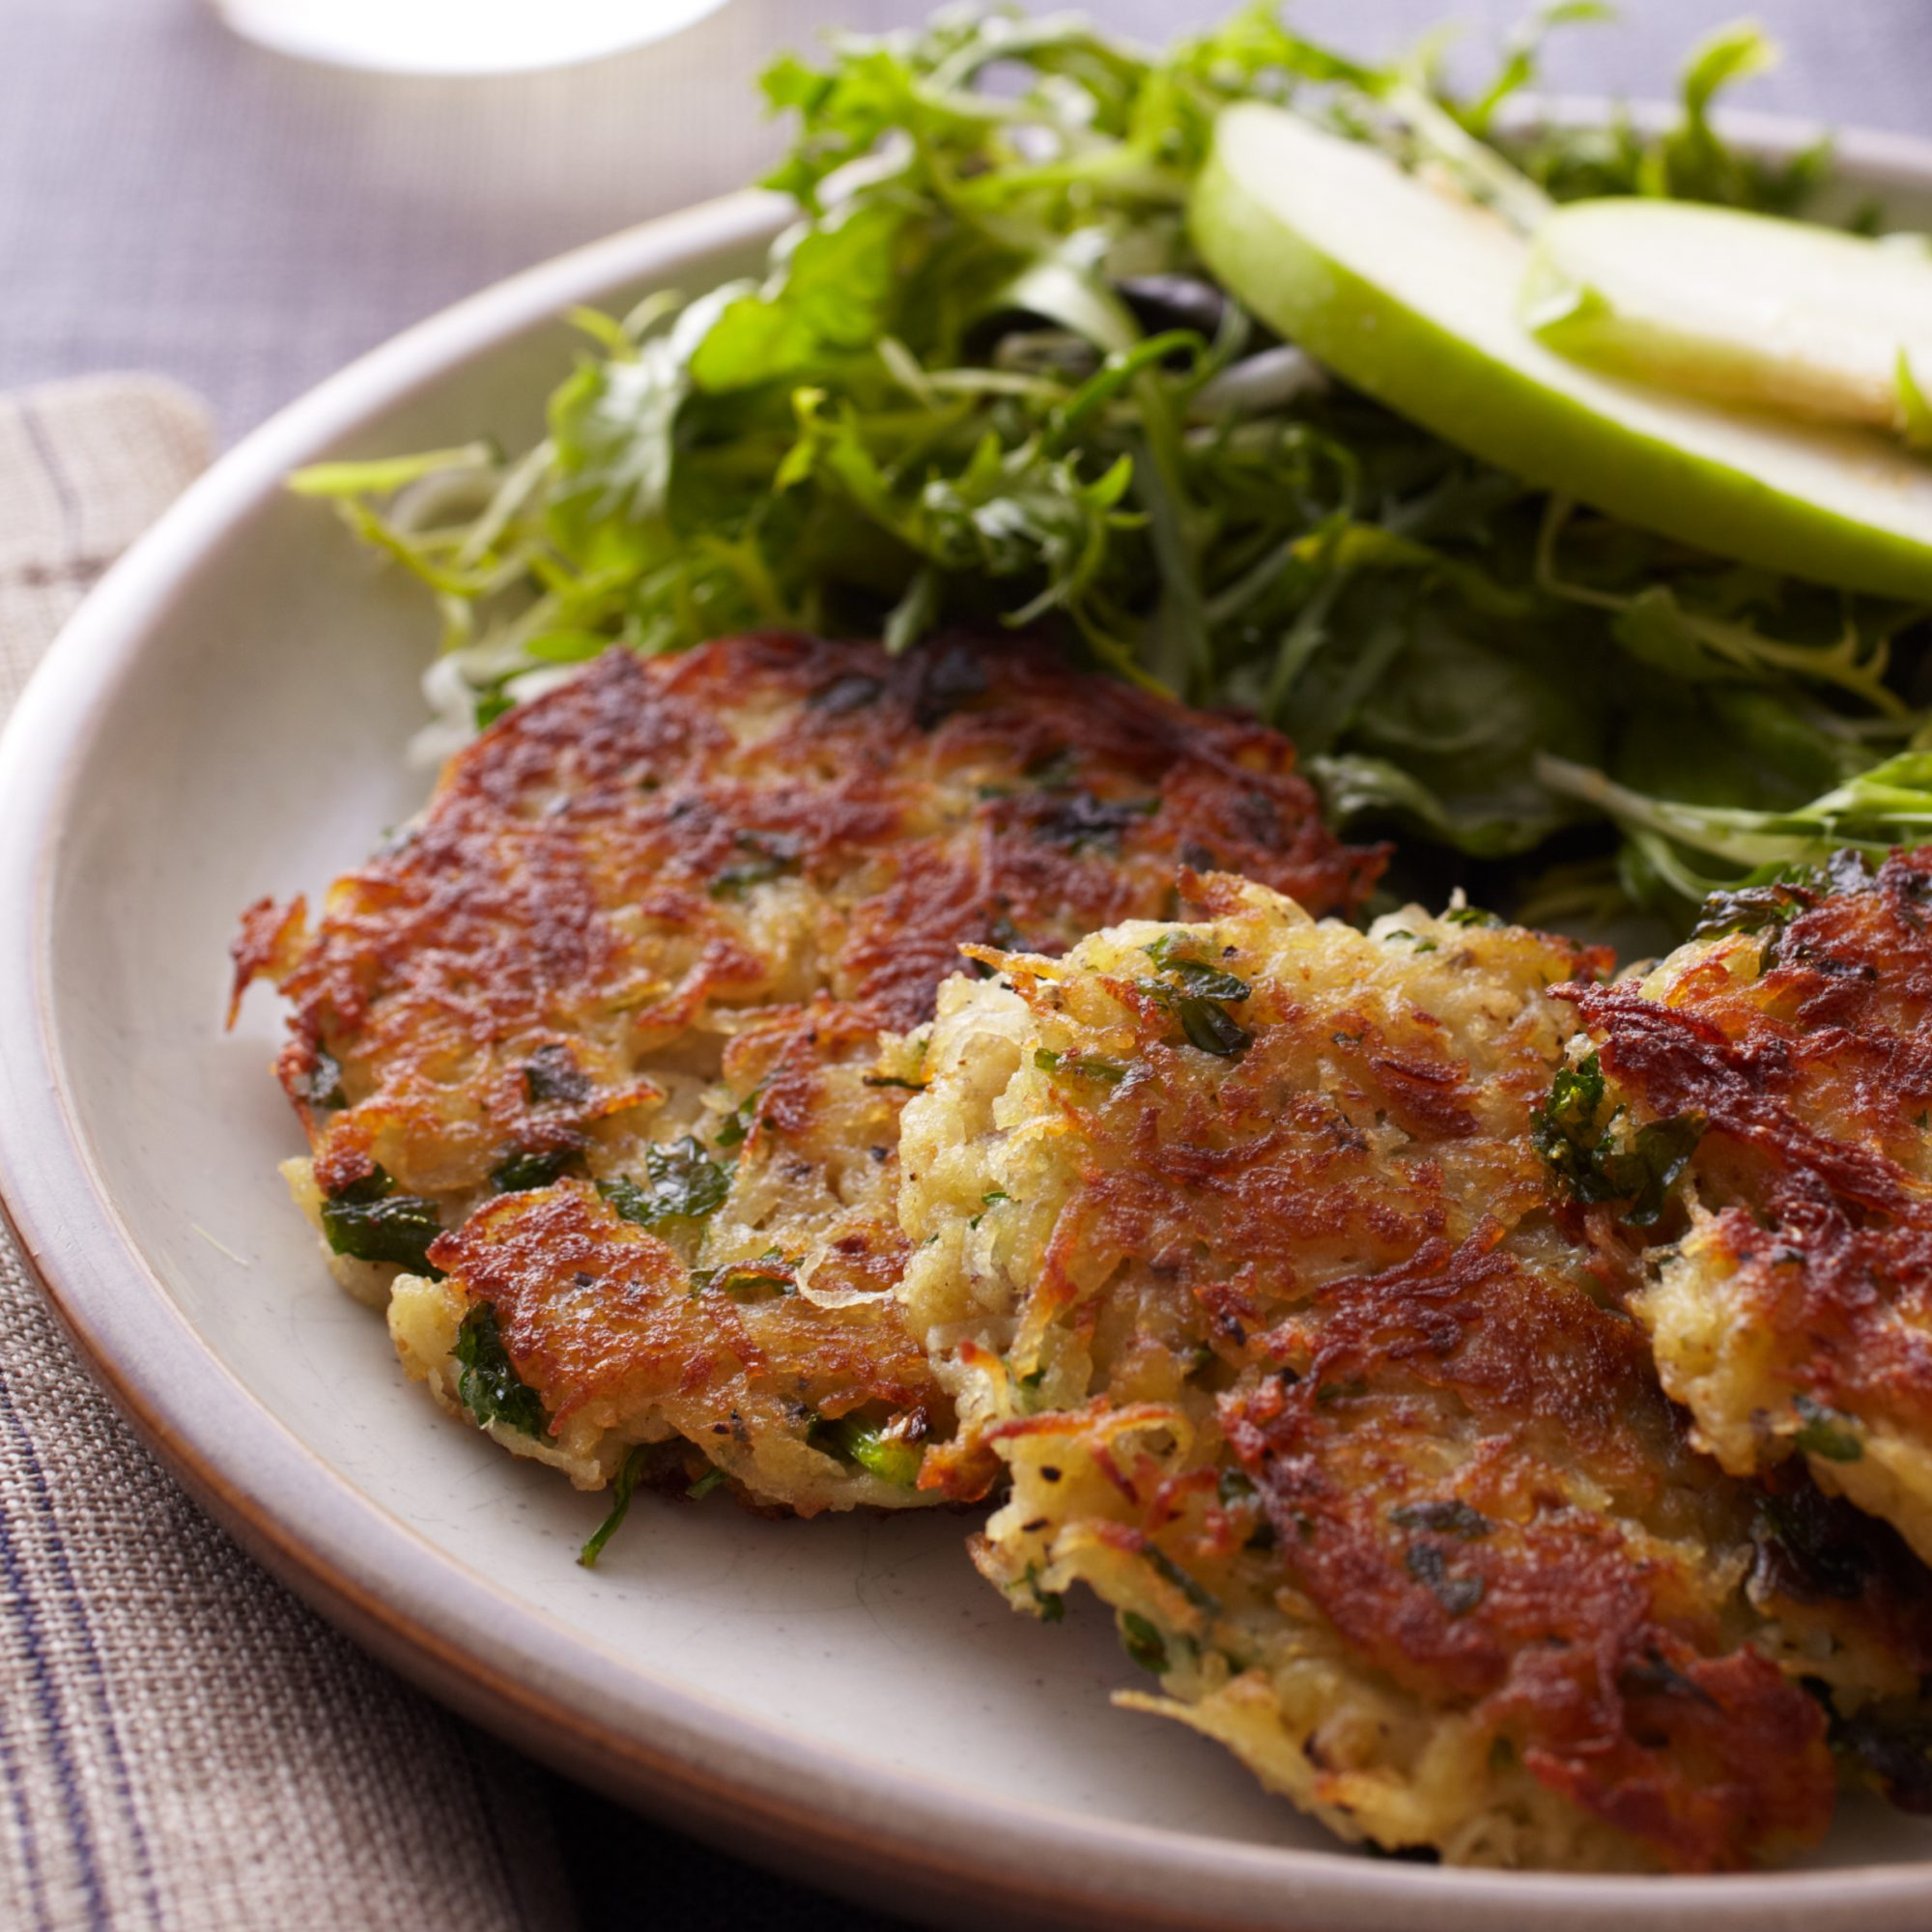 Curly-Endive Salad with Potato-and-Apple Pancakes